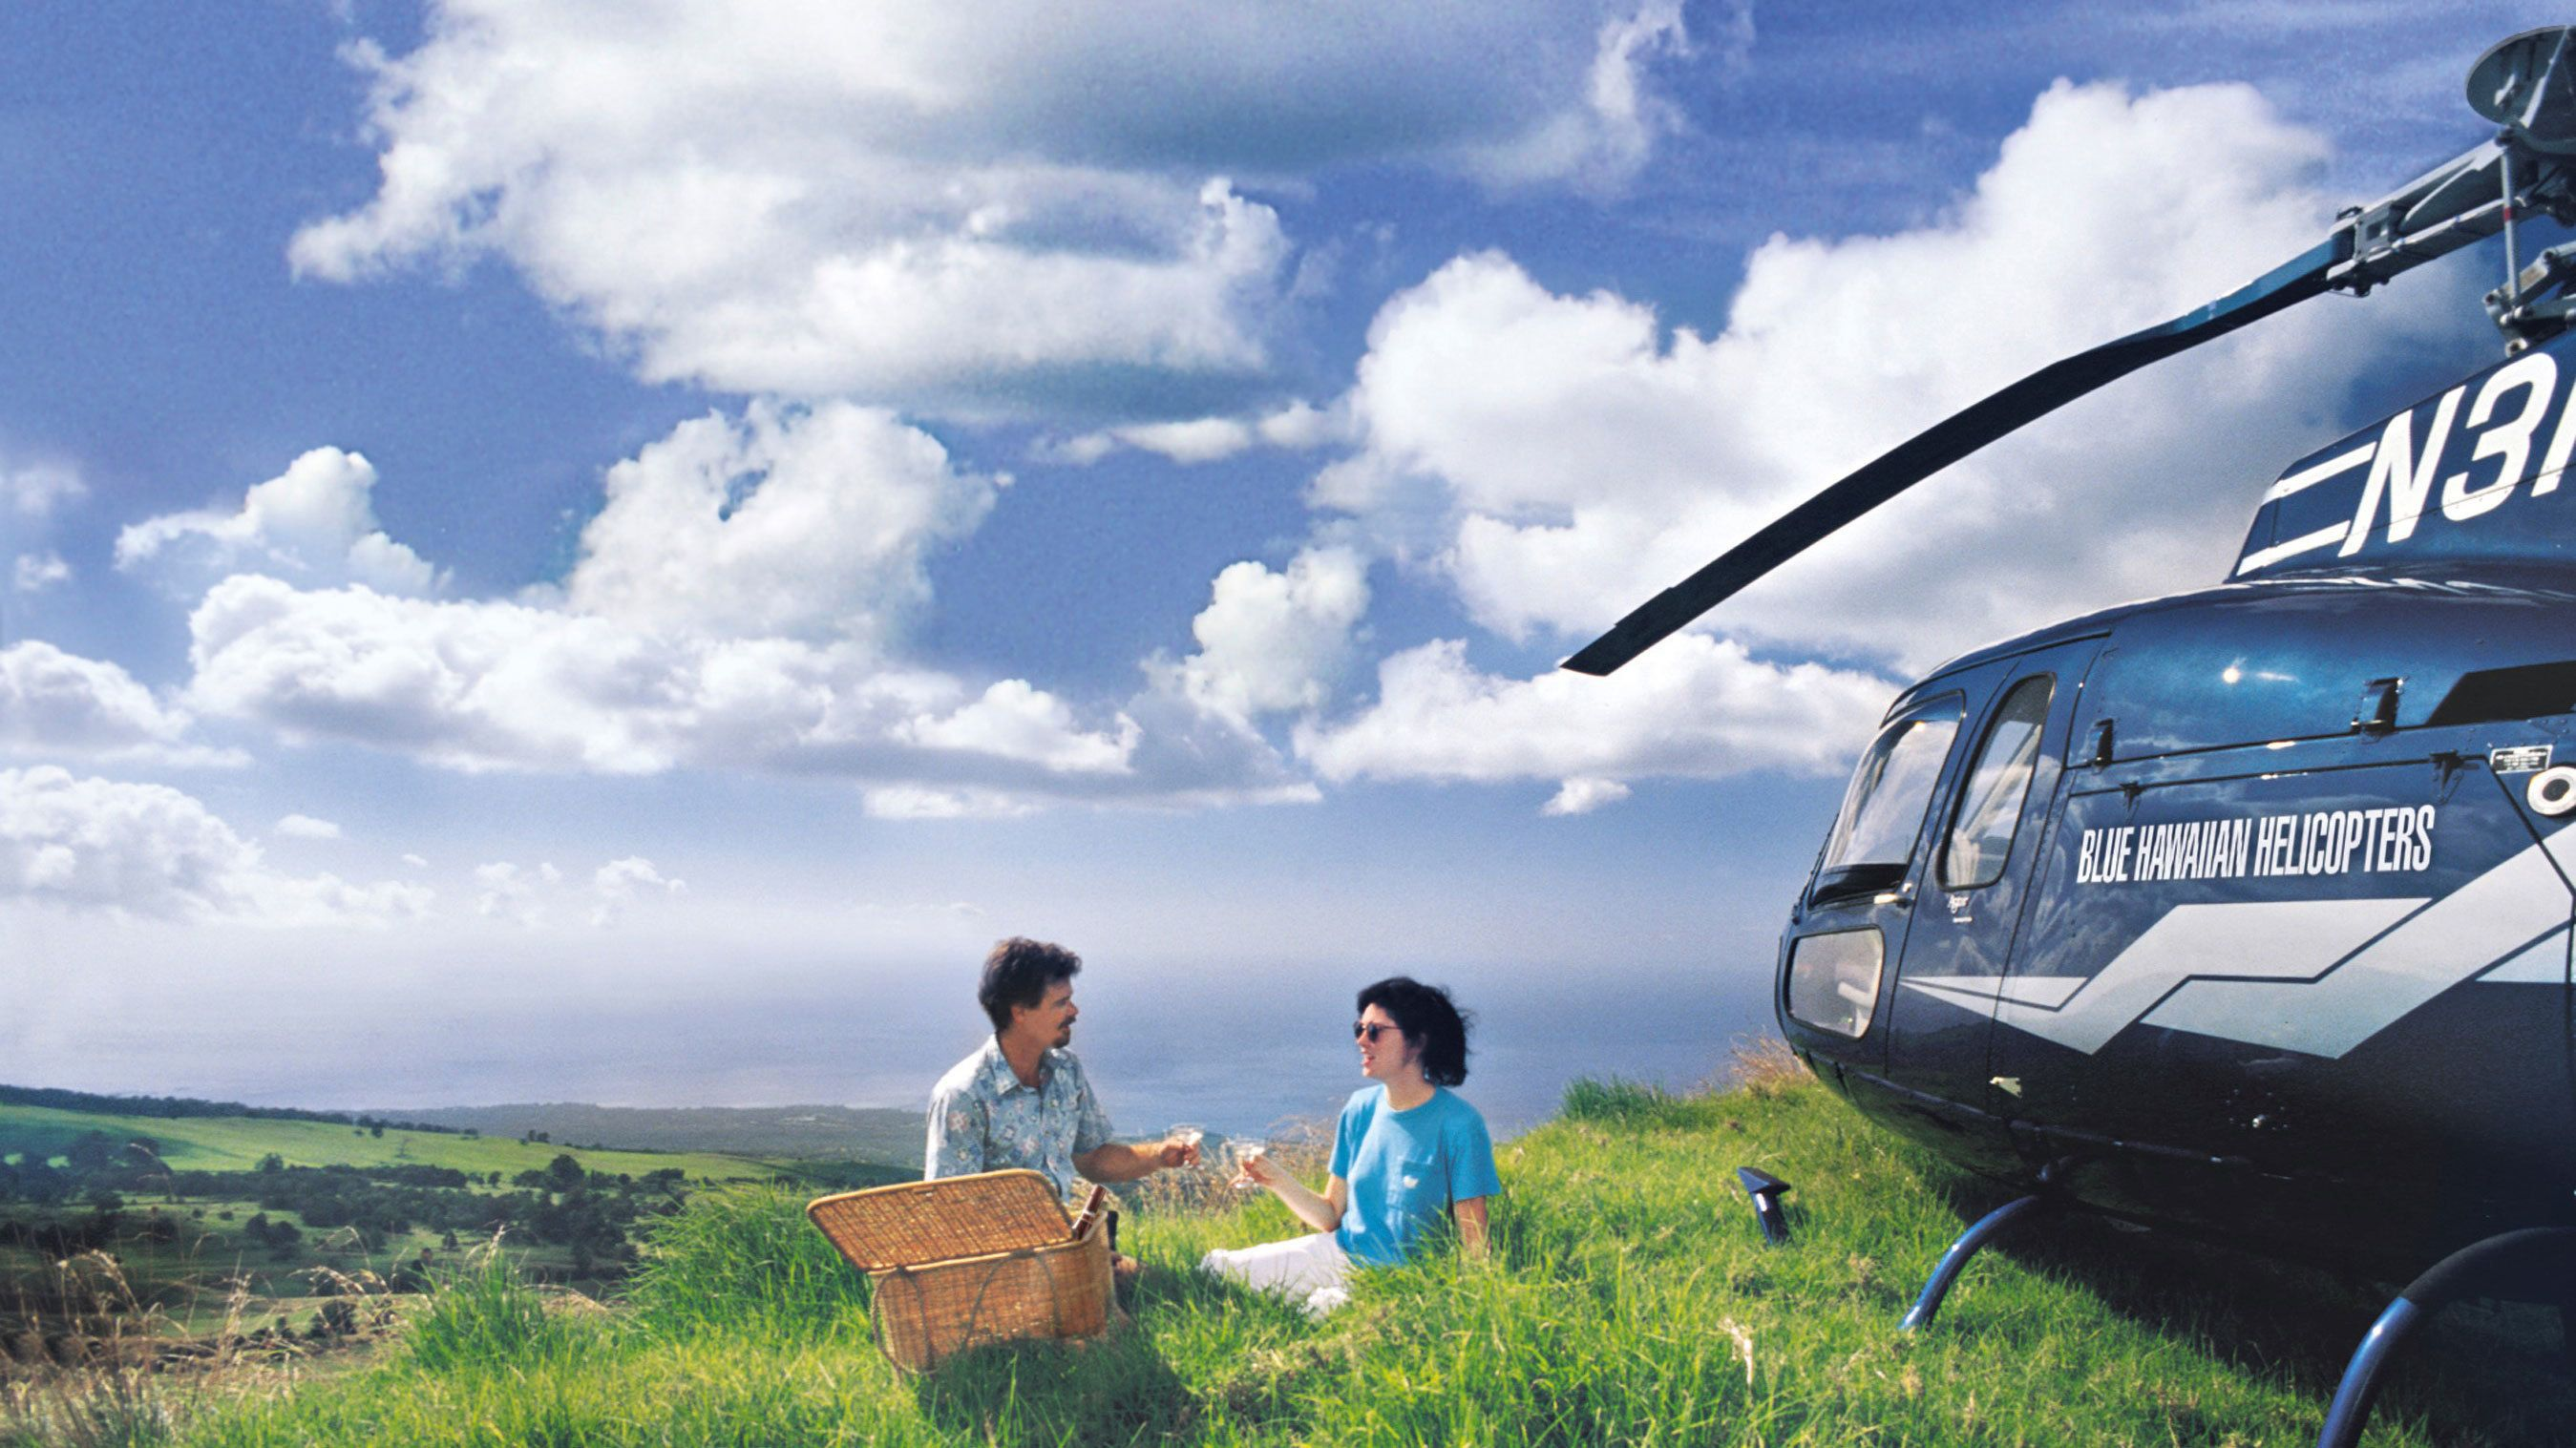 After the helicopter ride, land in a meadow to enjoy an afternoon picnic